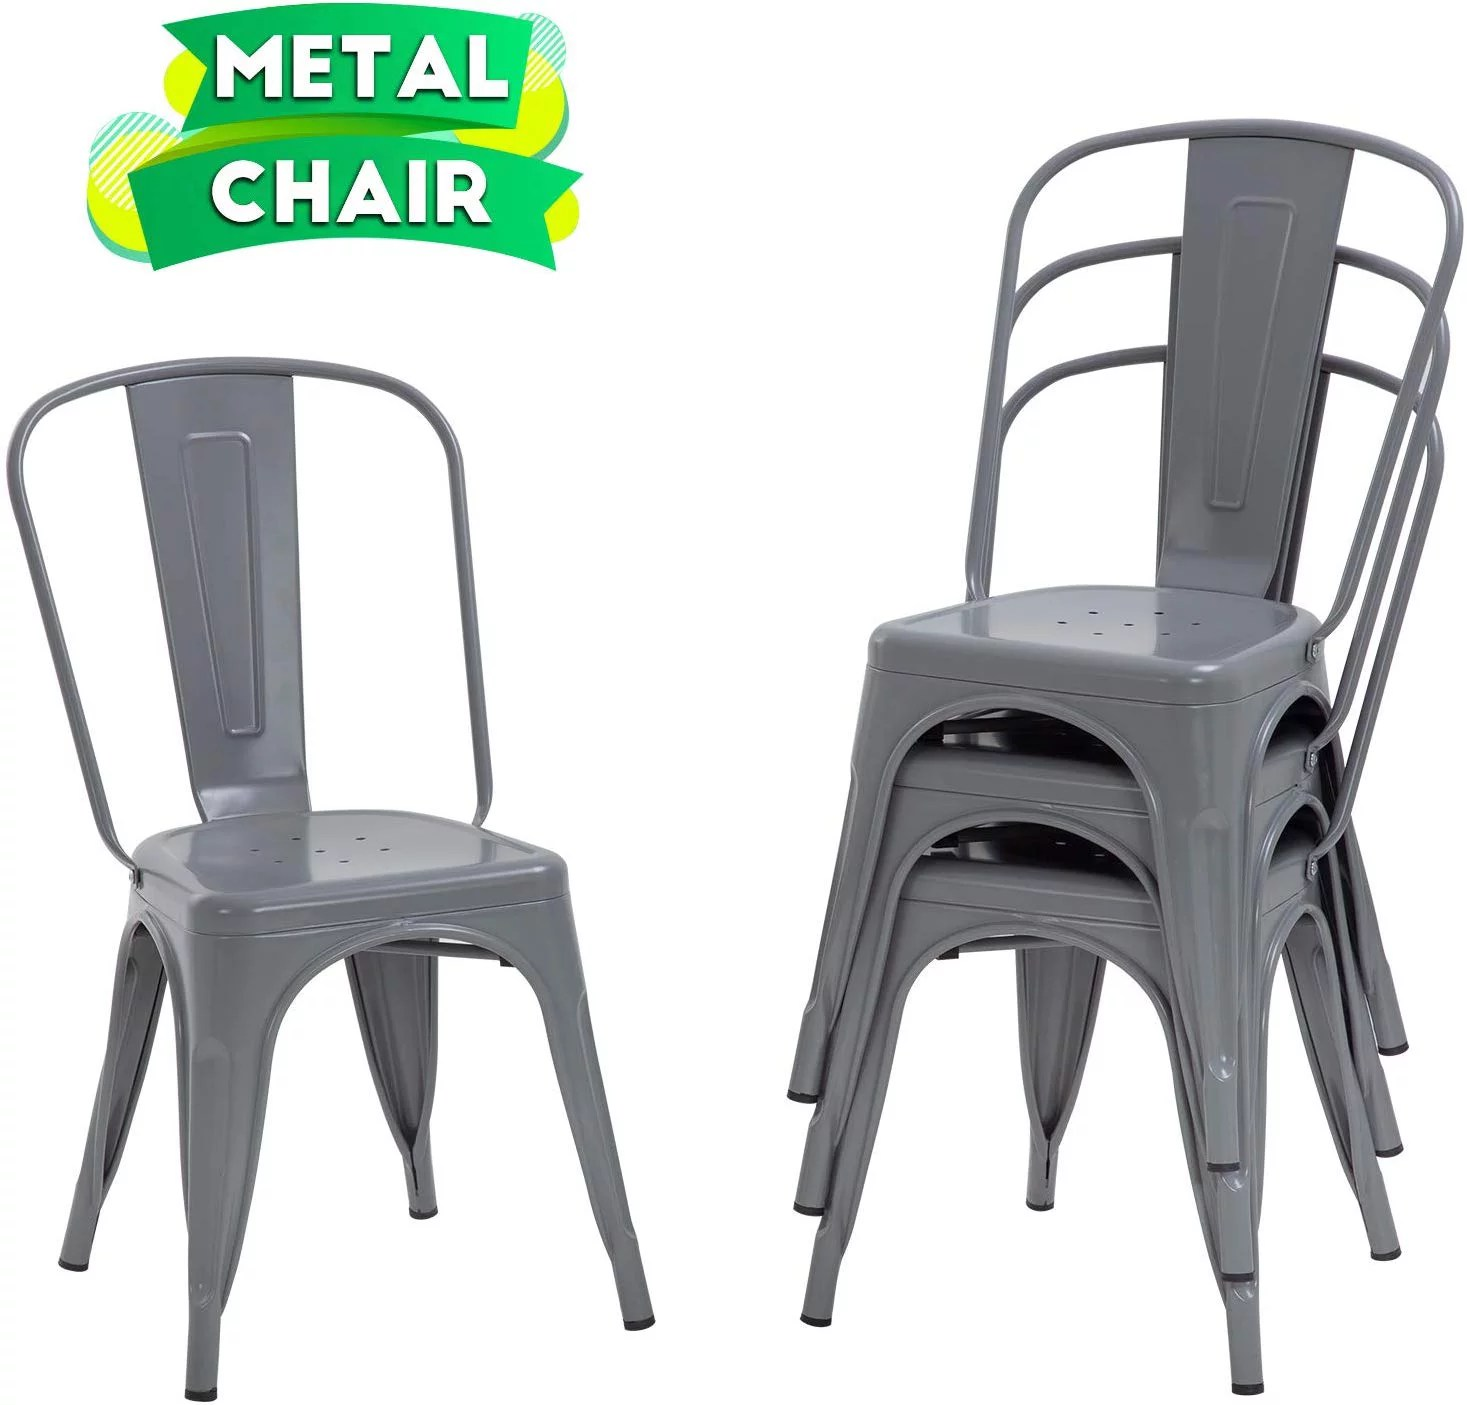 dining chairs set of 4 indoor outdoor chairs patio chairs furniture kitchen metal chairs 18 inch seat height 330lbs weight capacity restaurant chair